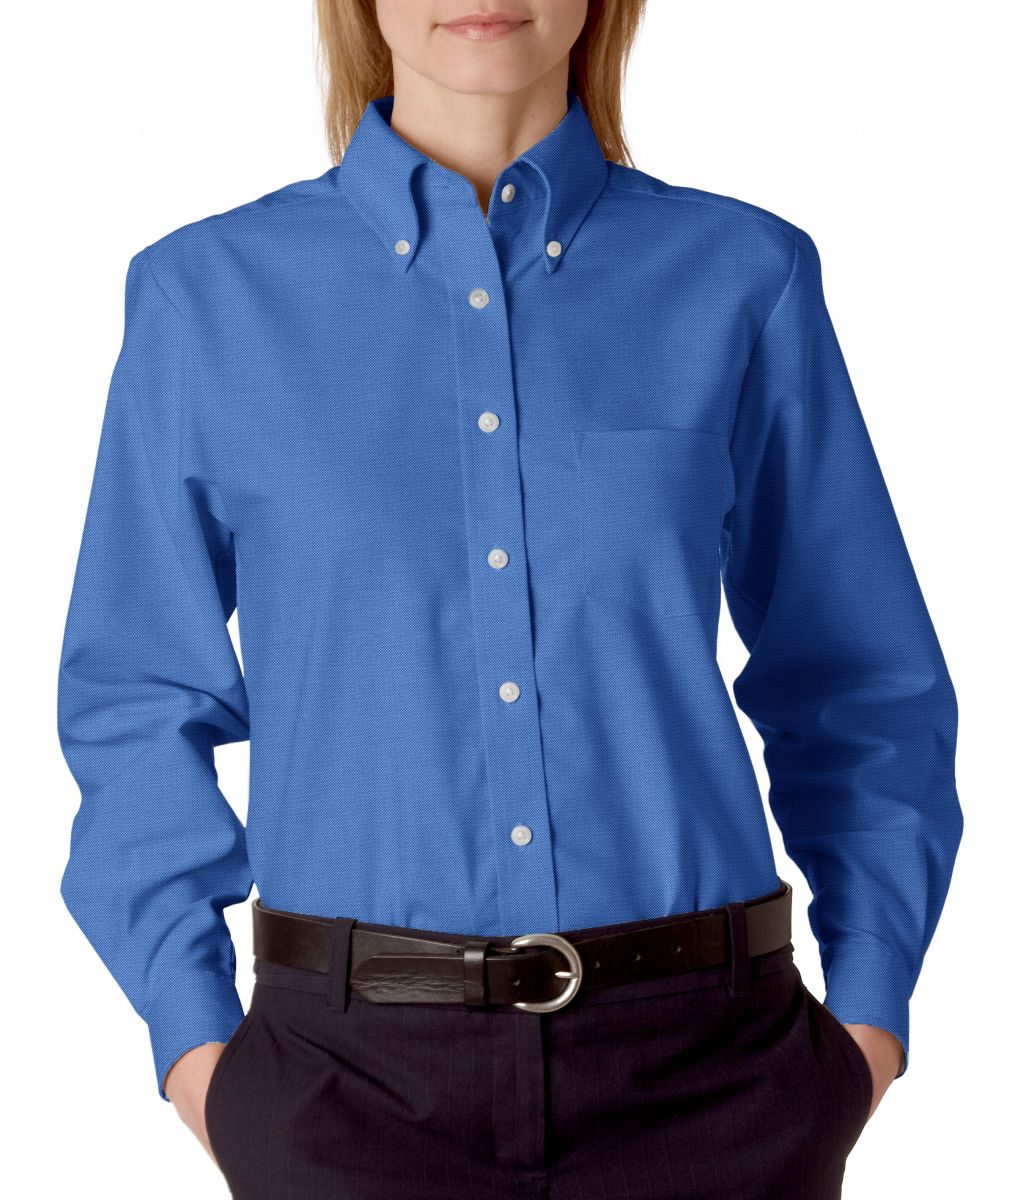 Design casual button down shirts for your business, club, or event. Featuring High Quality Embroidery, Free Shipping, Live Help, and tons of design ideas.